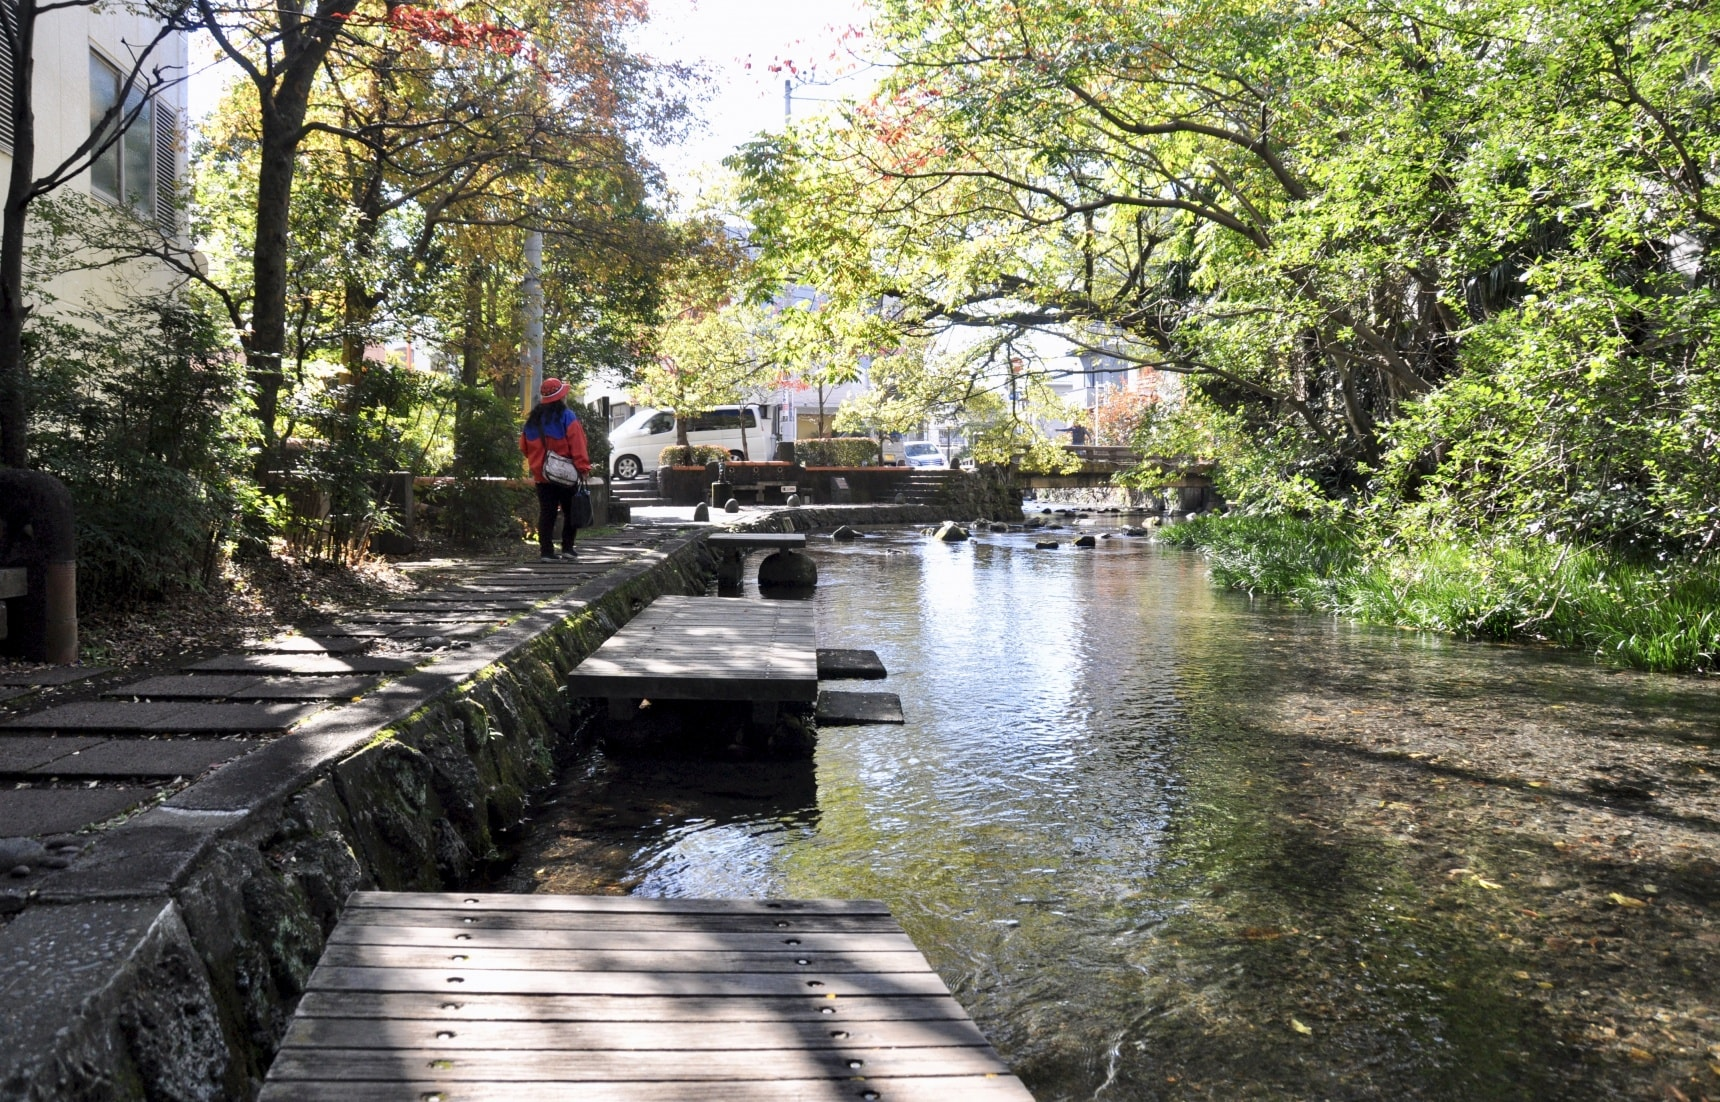 Mishima: A Stroll down the Genbe River